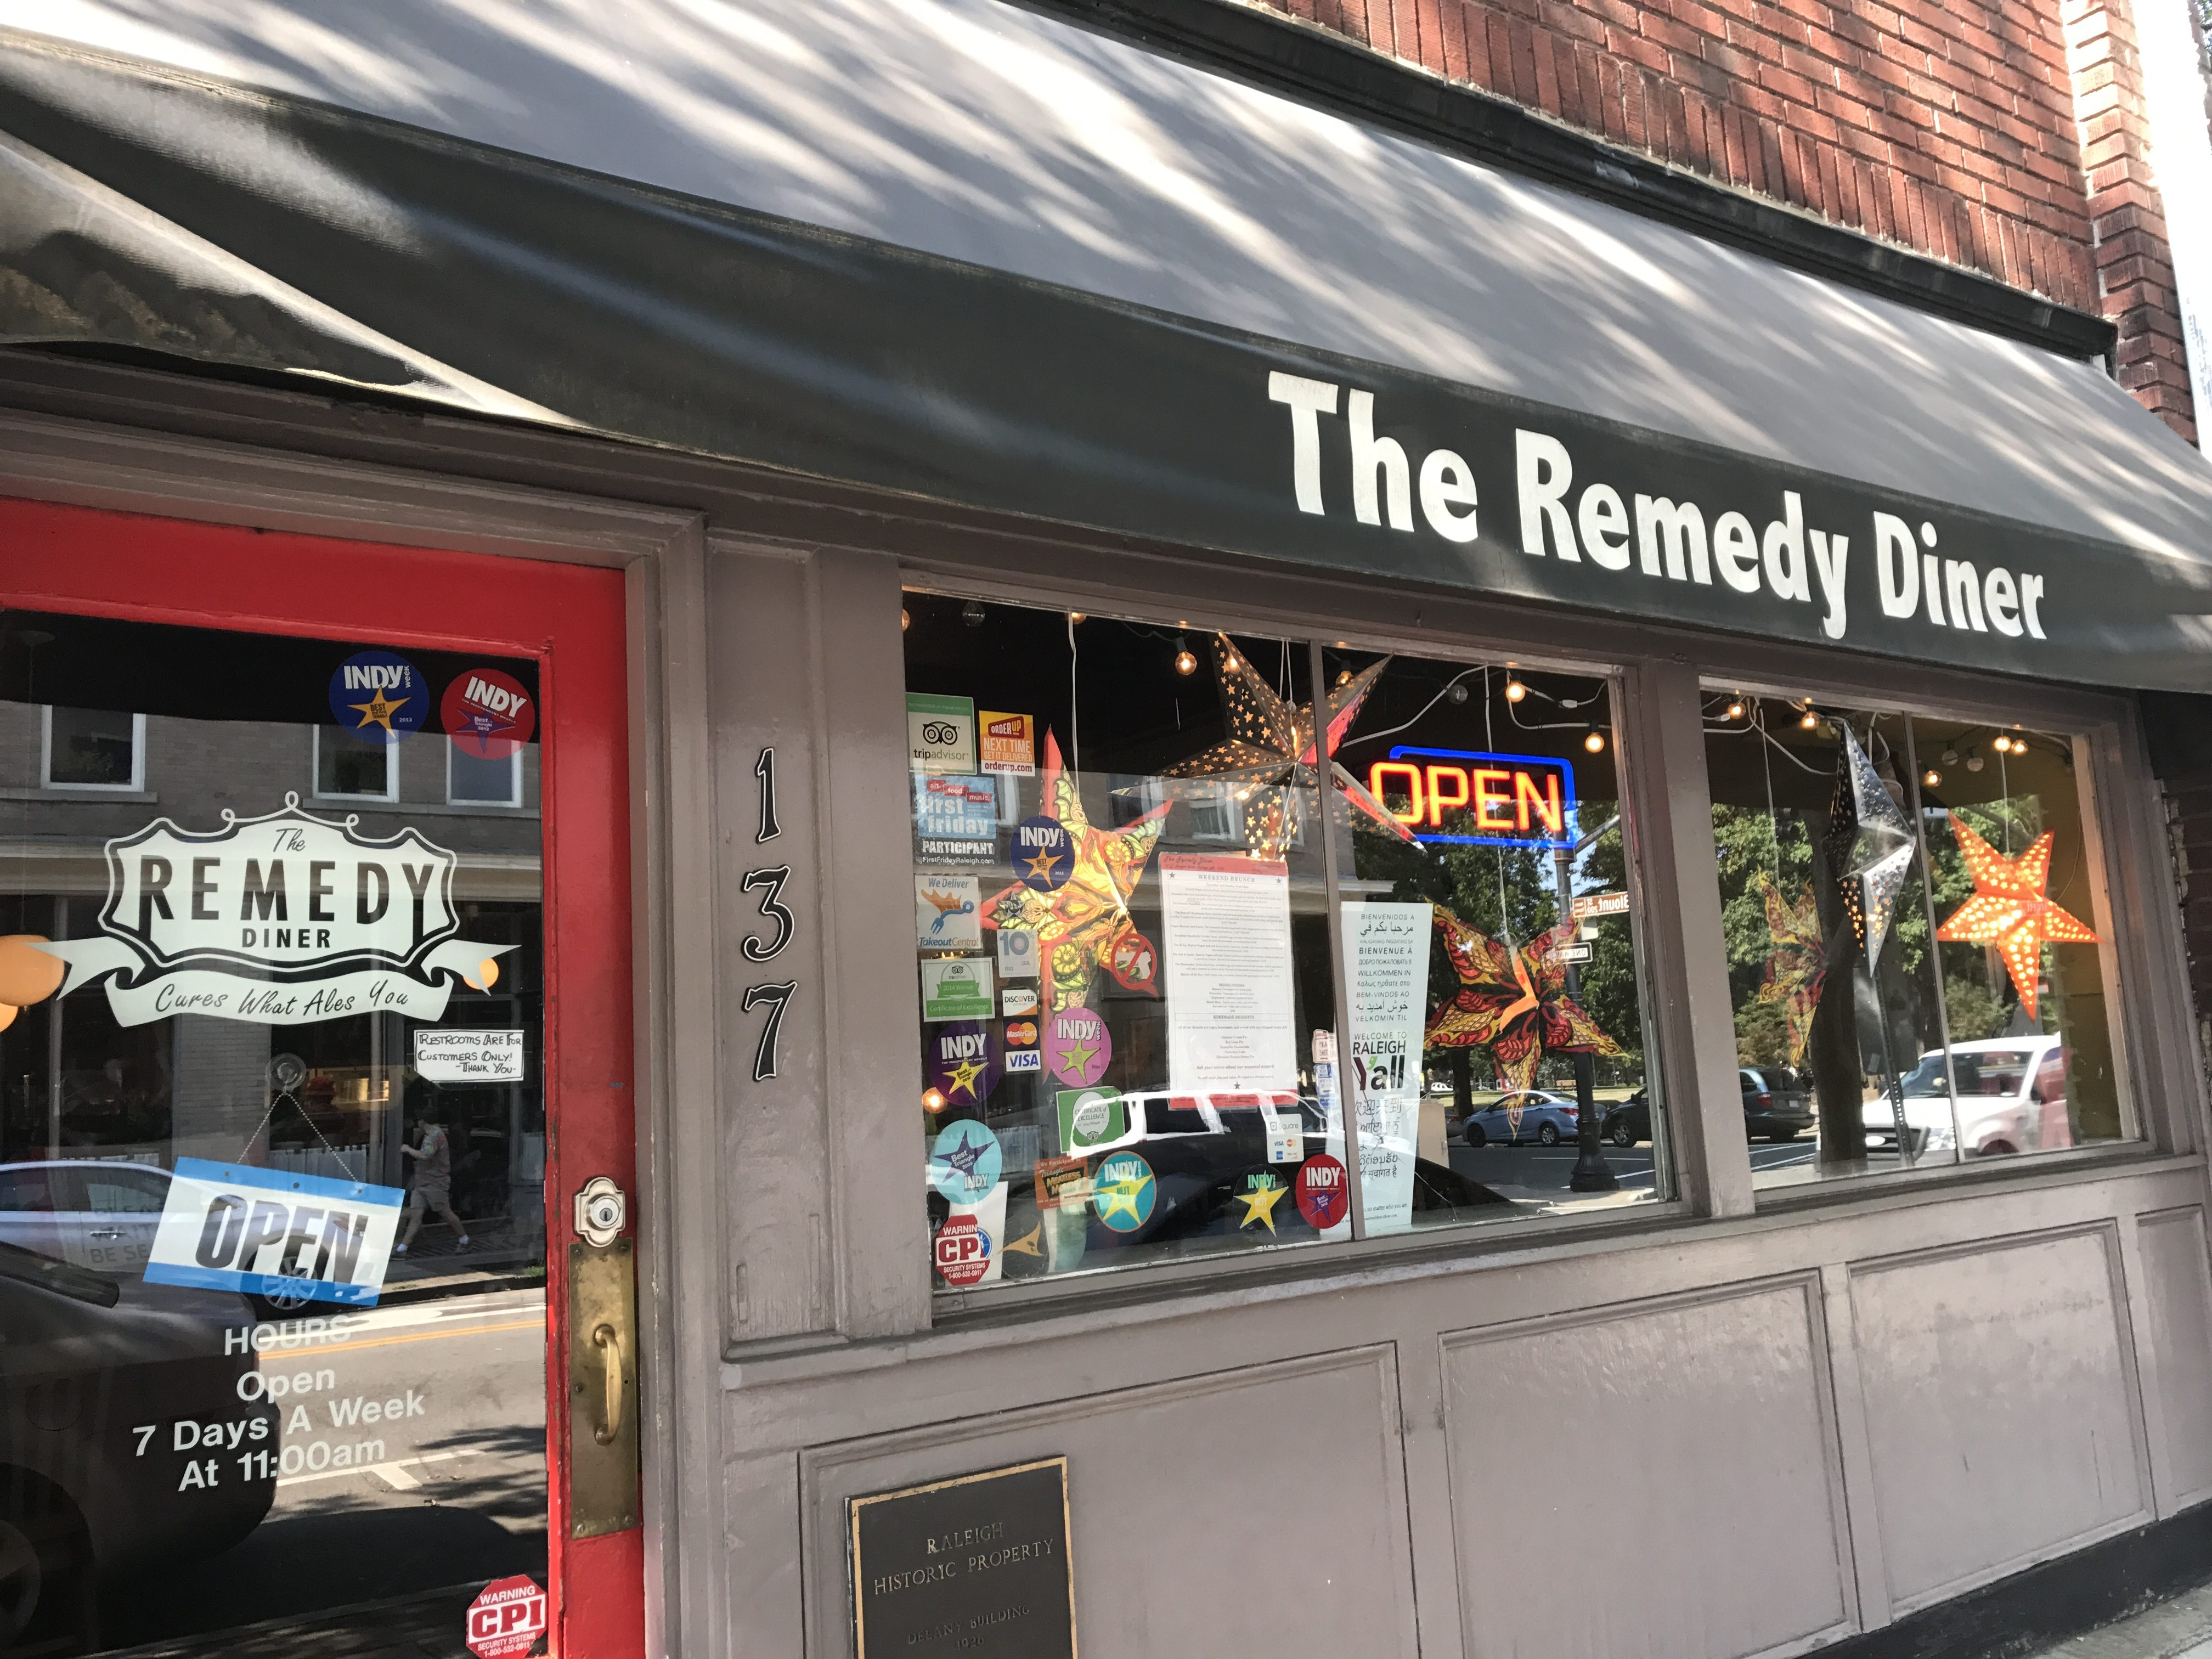 The Remedy Diner